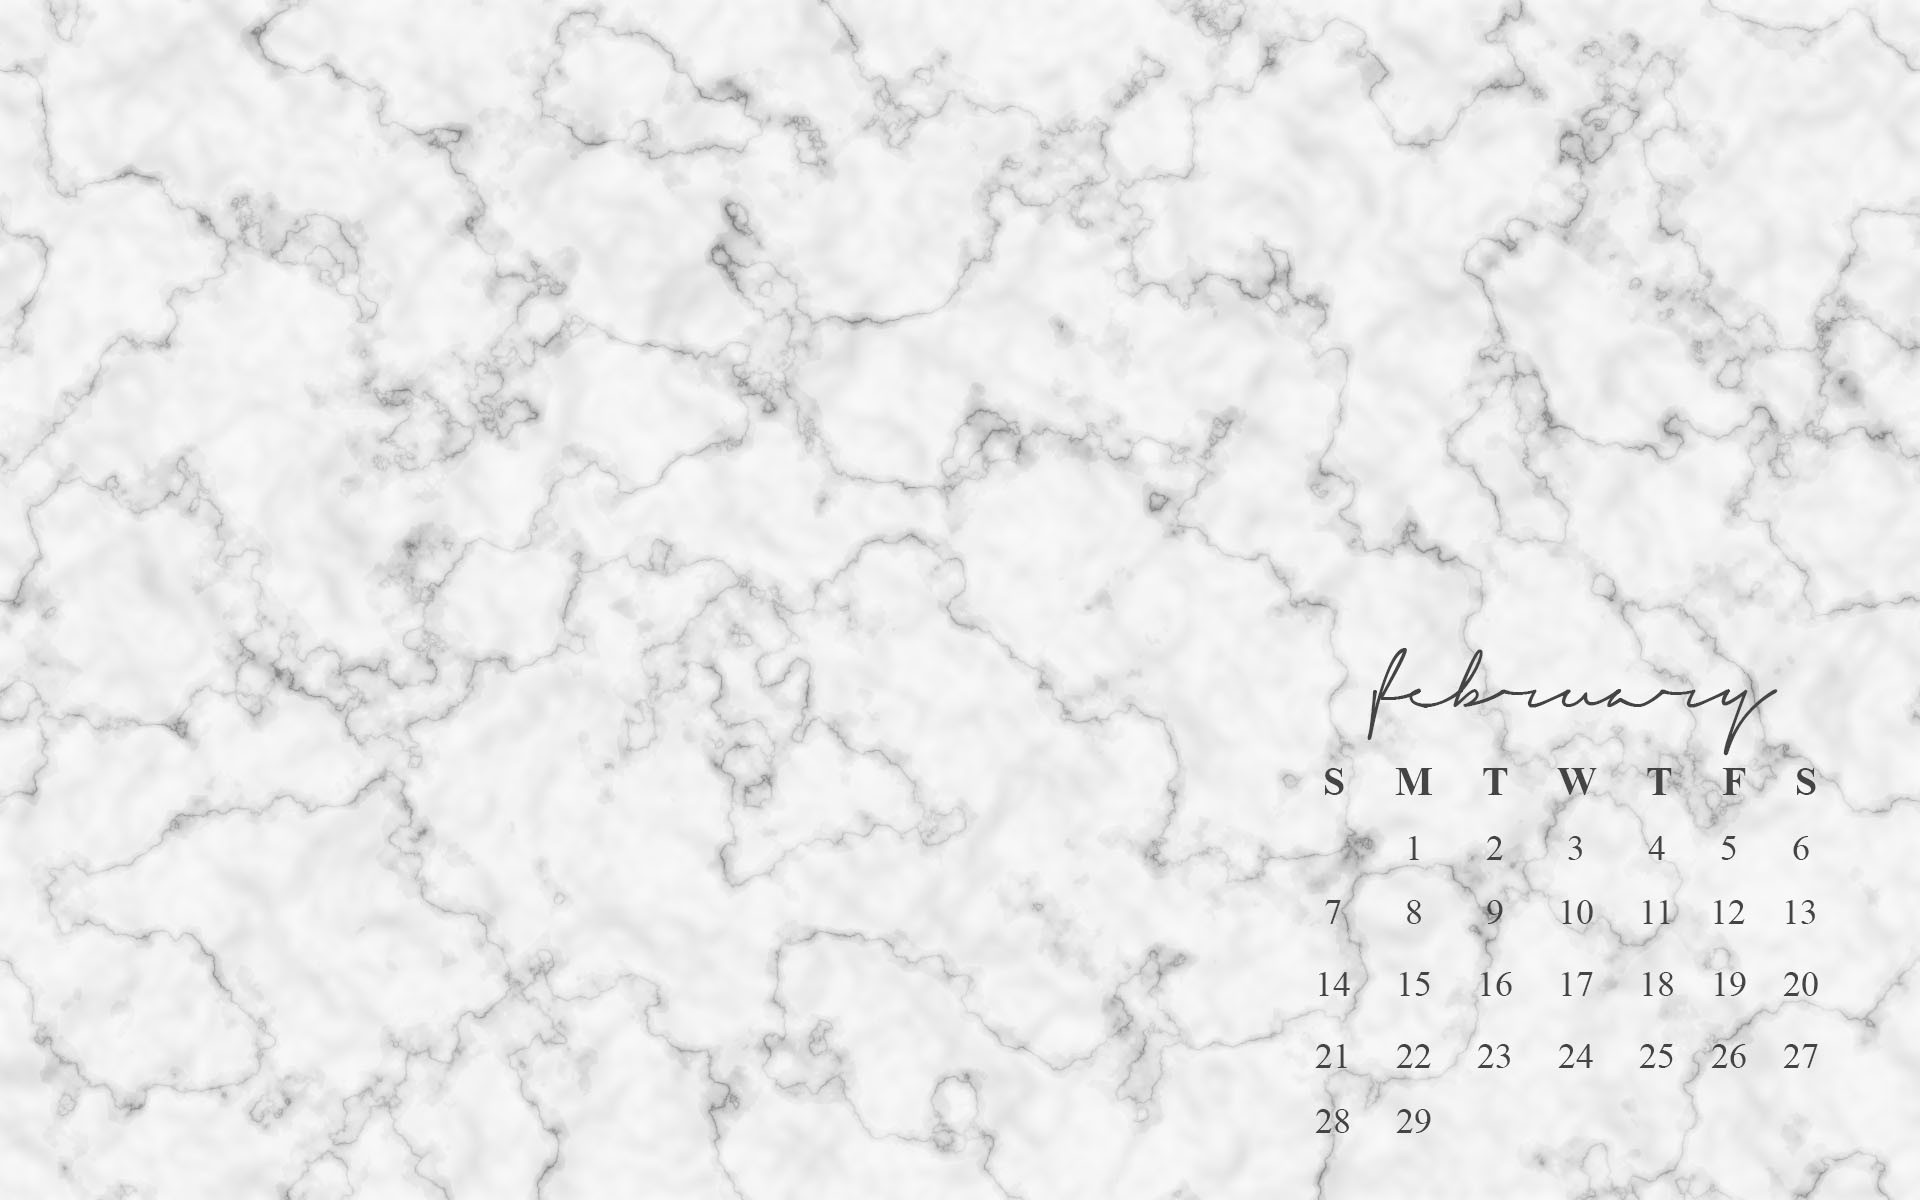 Marble Wallpaper Download Free Awesome Full Hd Backgrounds For Images, Photos, Reviews